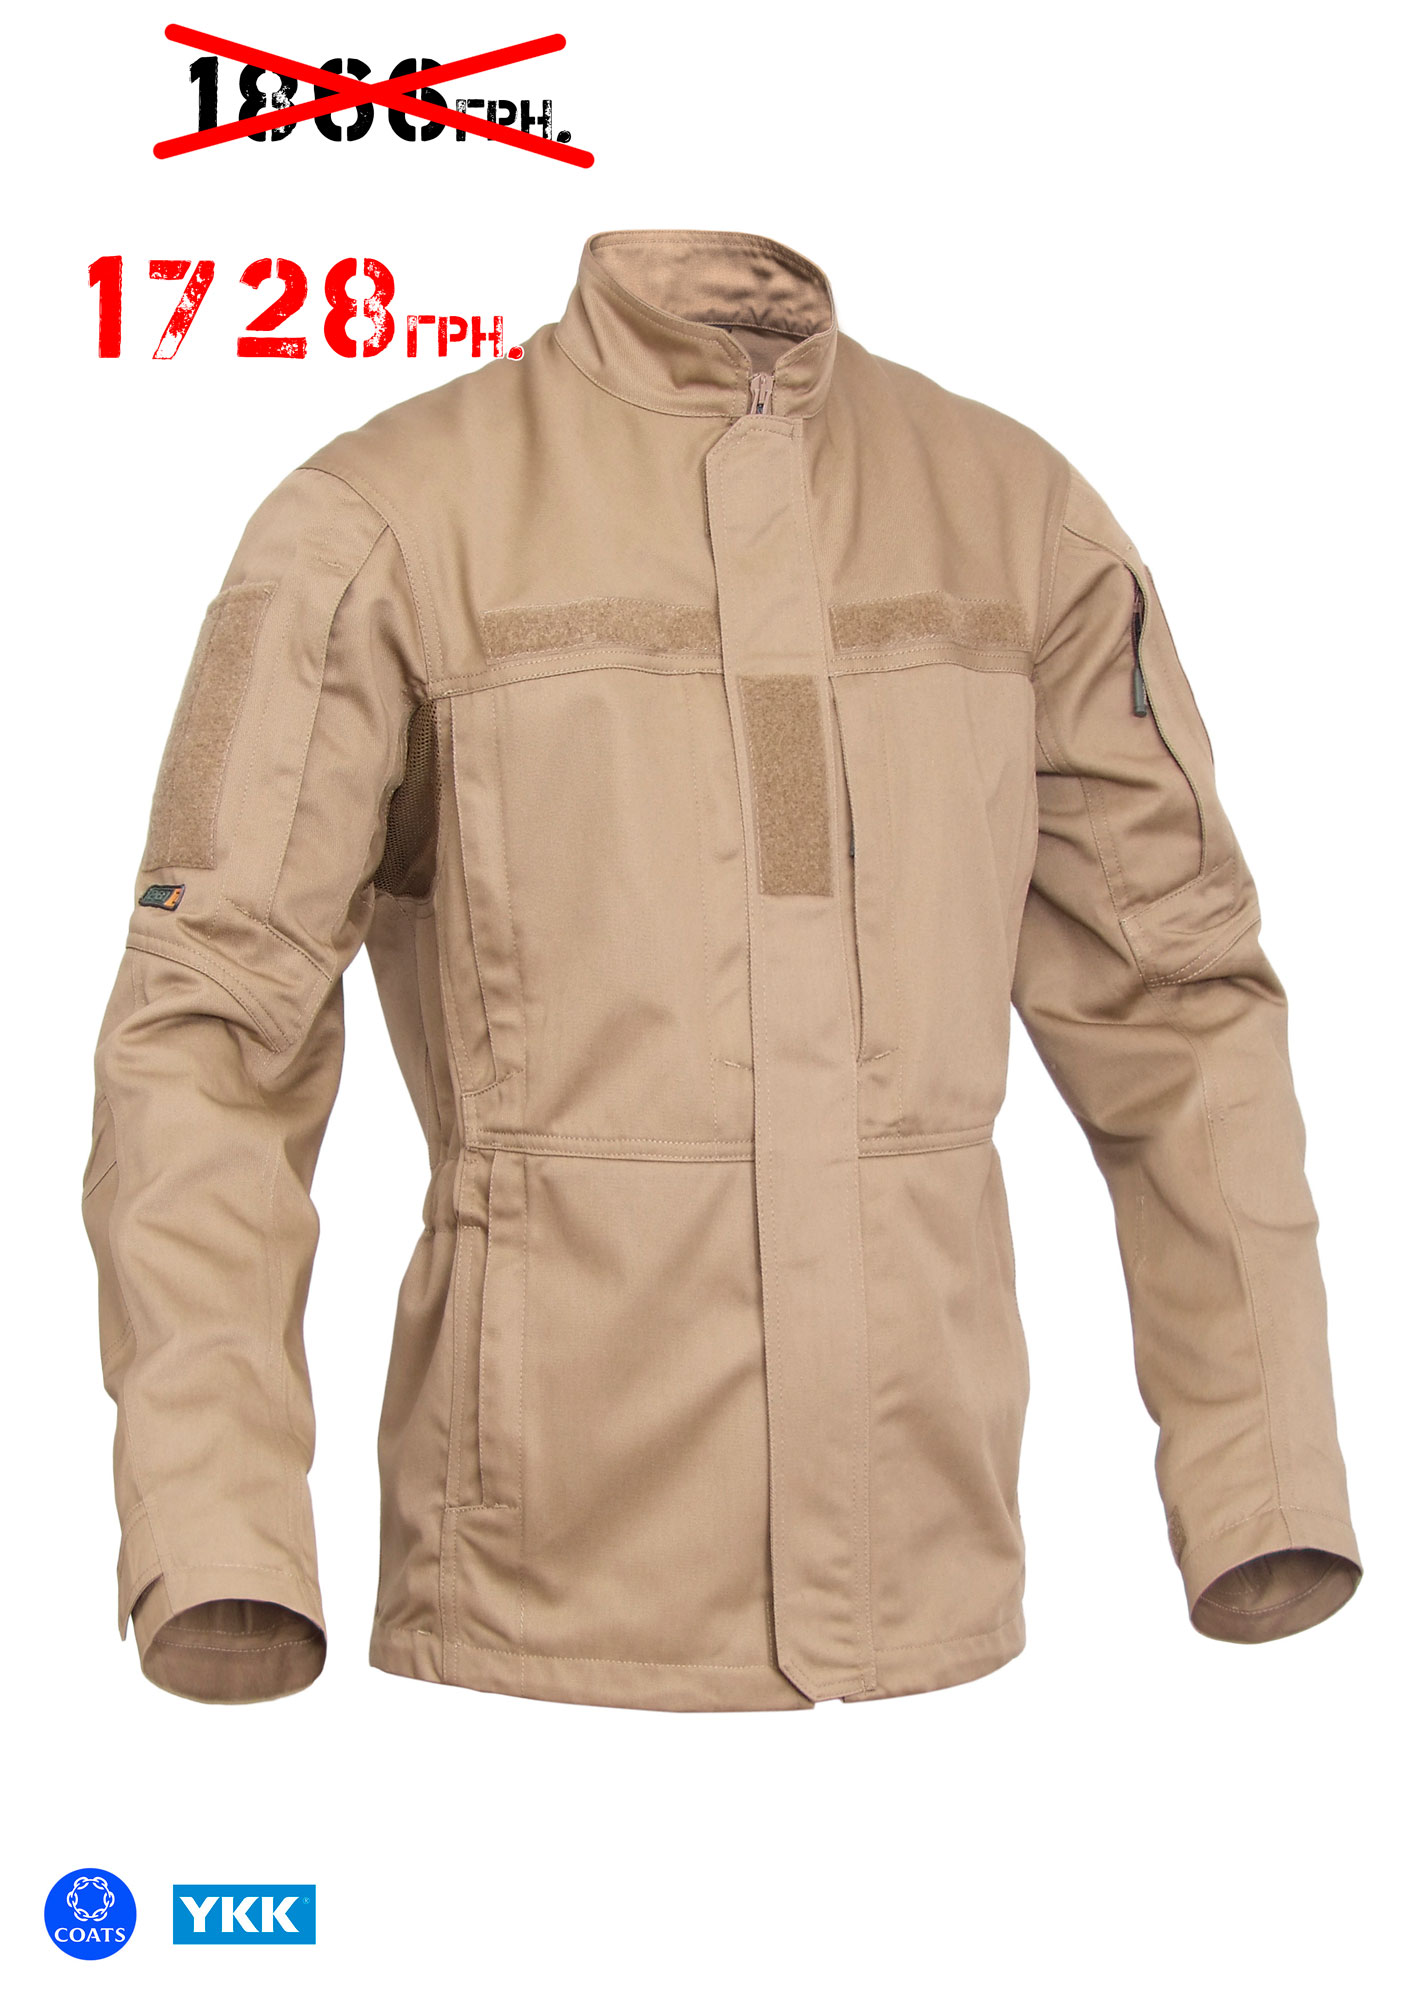 Summer field jacket